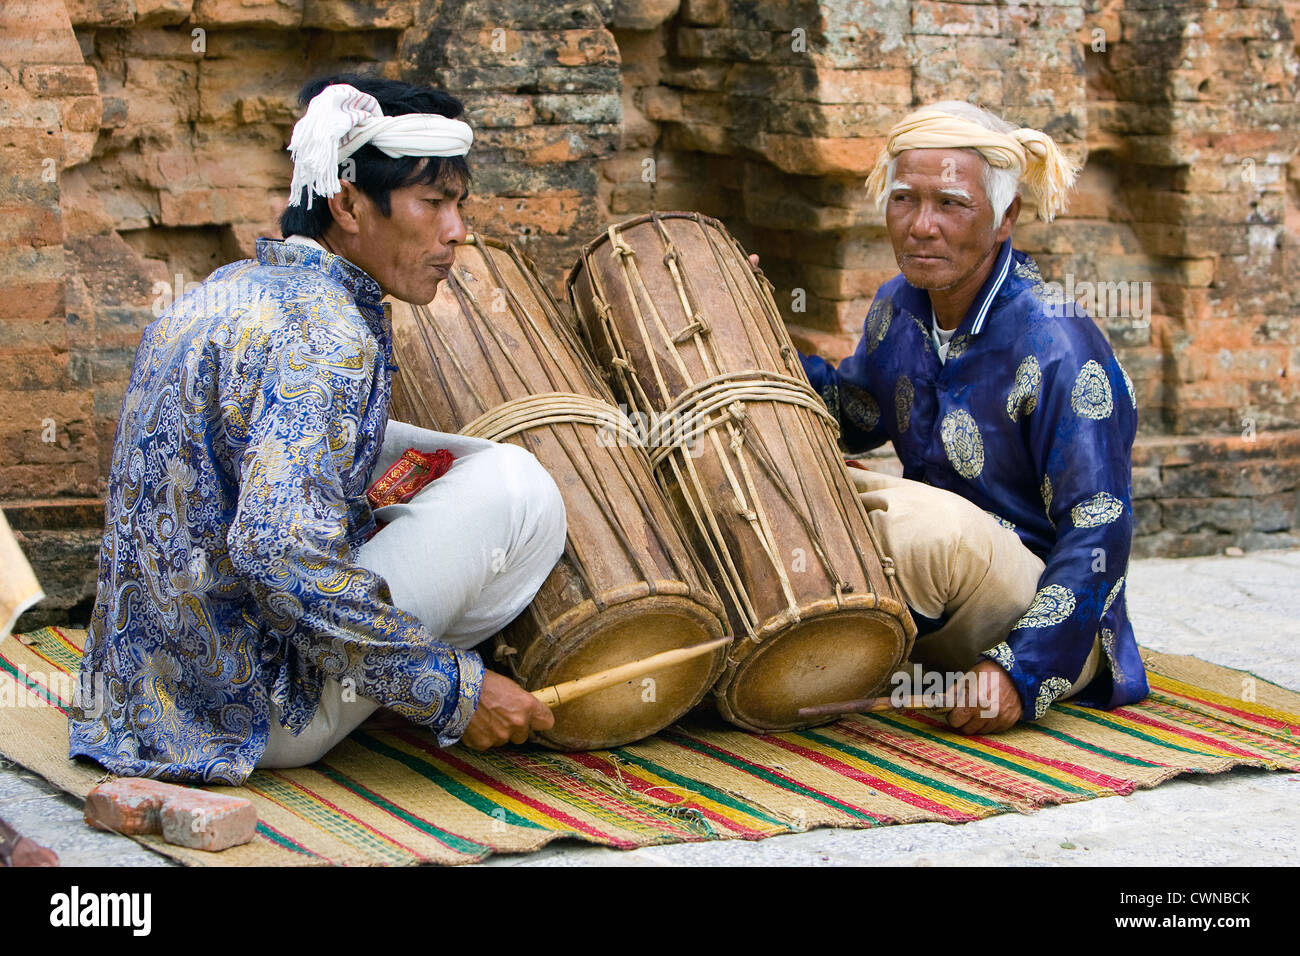 The Cham people are an ethnic group in Southeast Asia - Stock Image